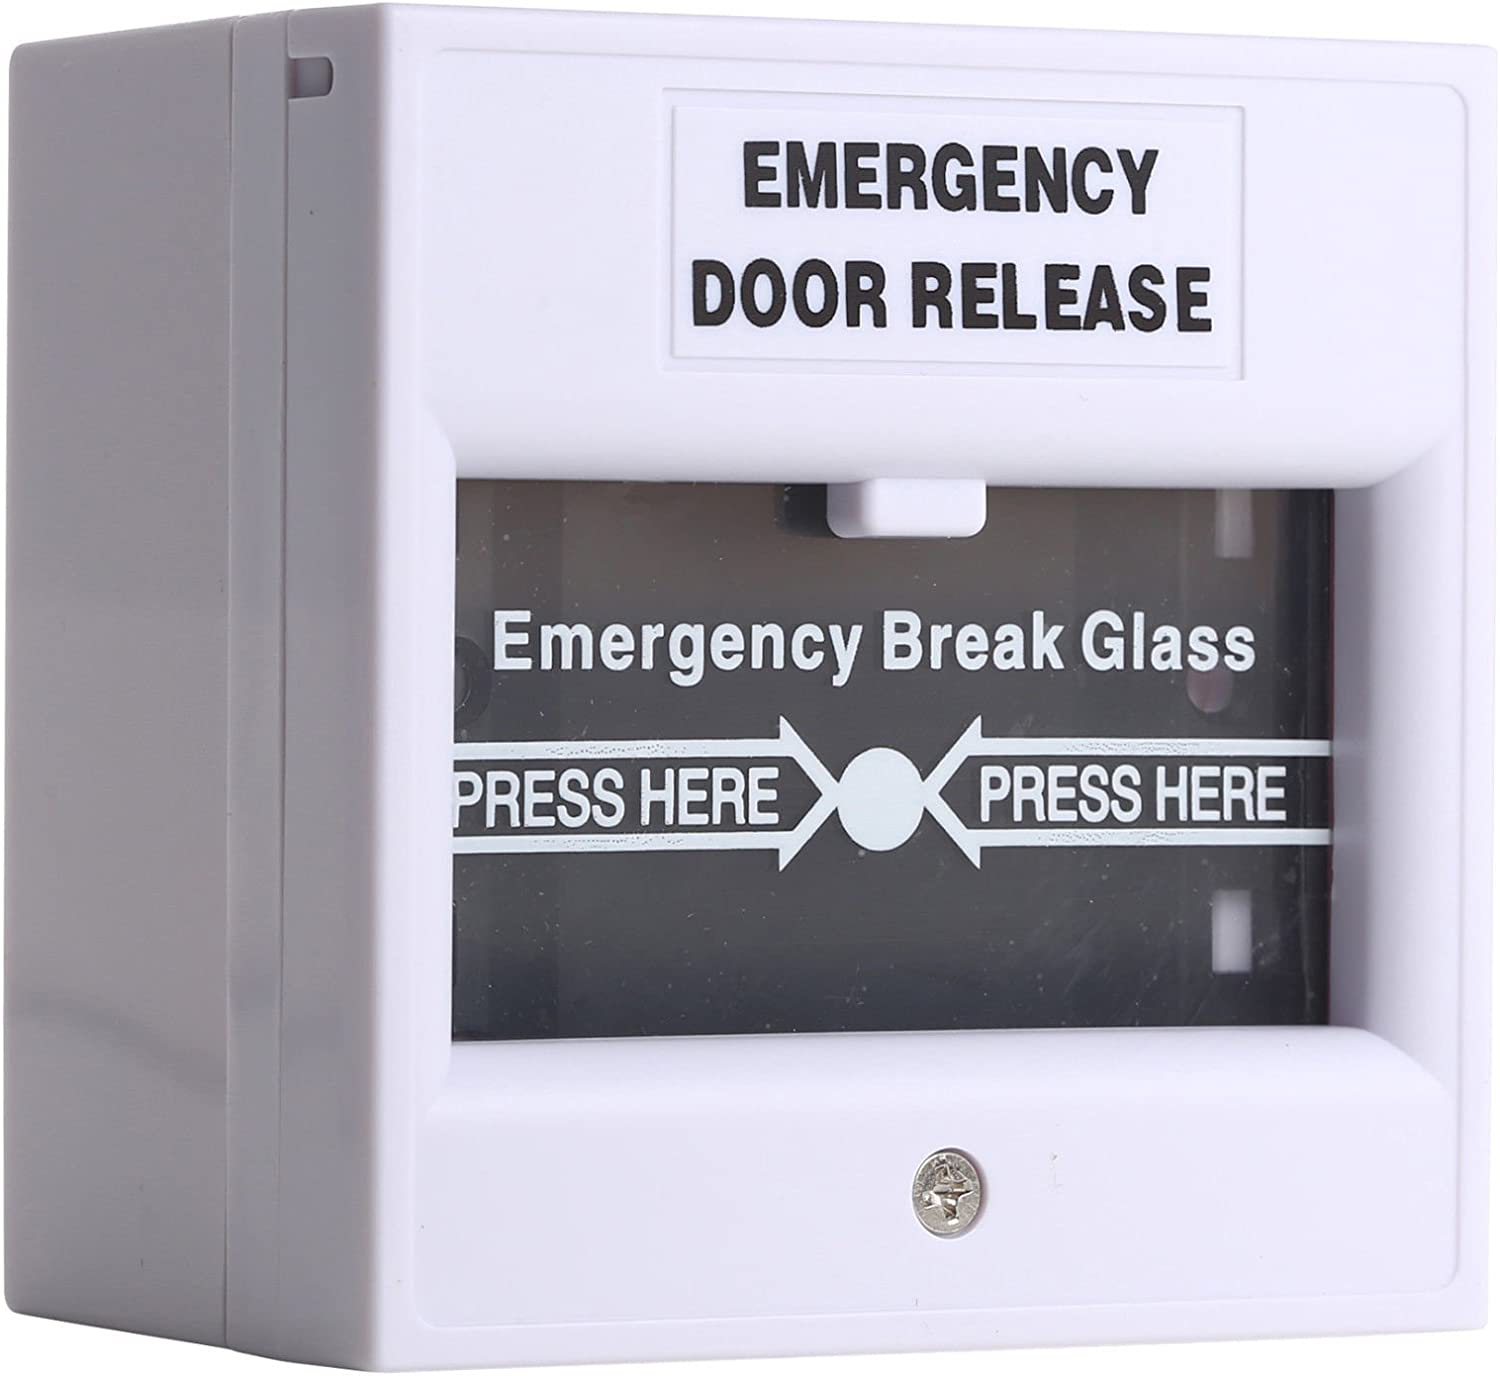 Wired Security Switch Break Glass For Fire Alarm Emergency Exit Release Button - -